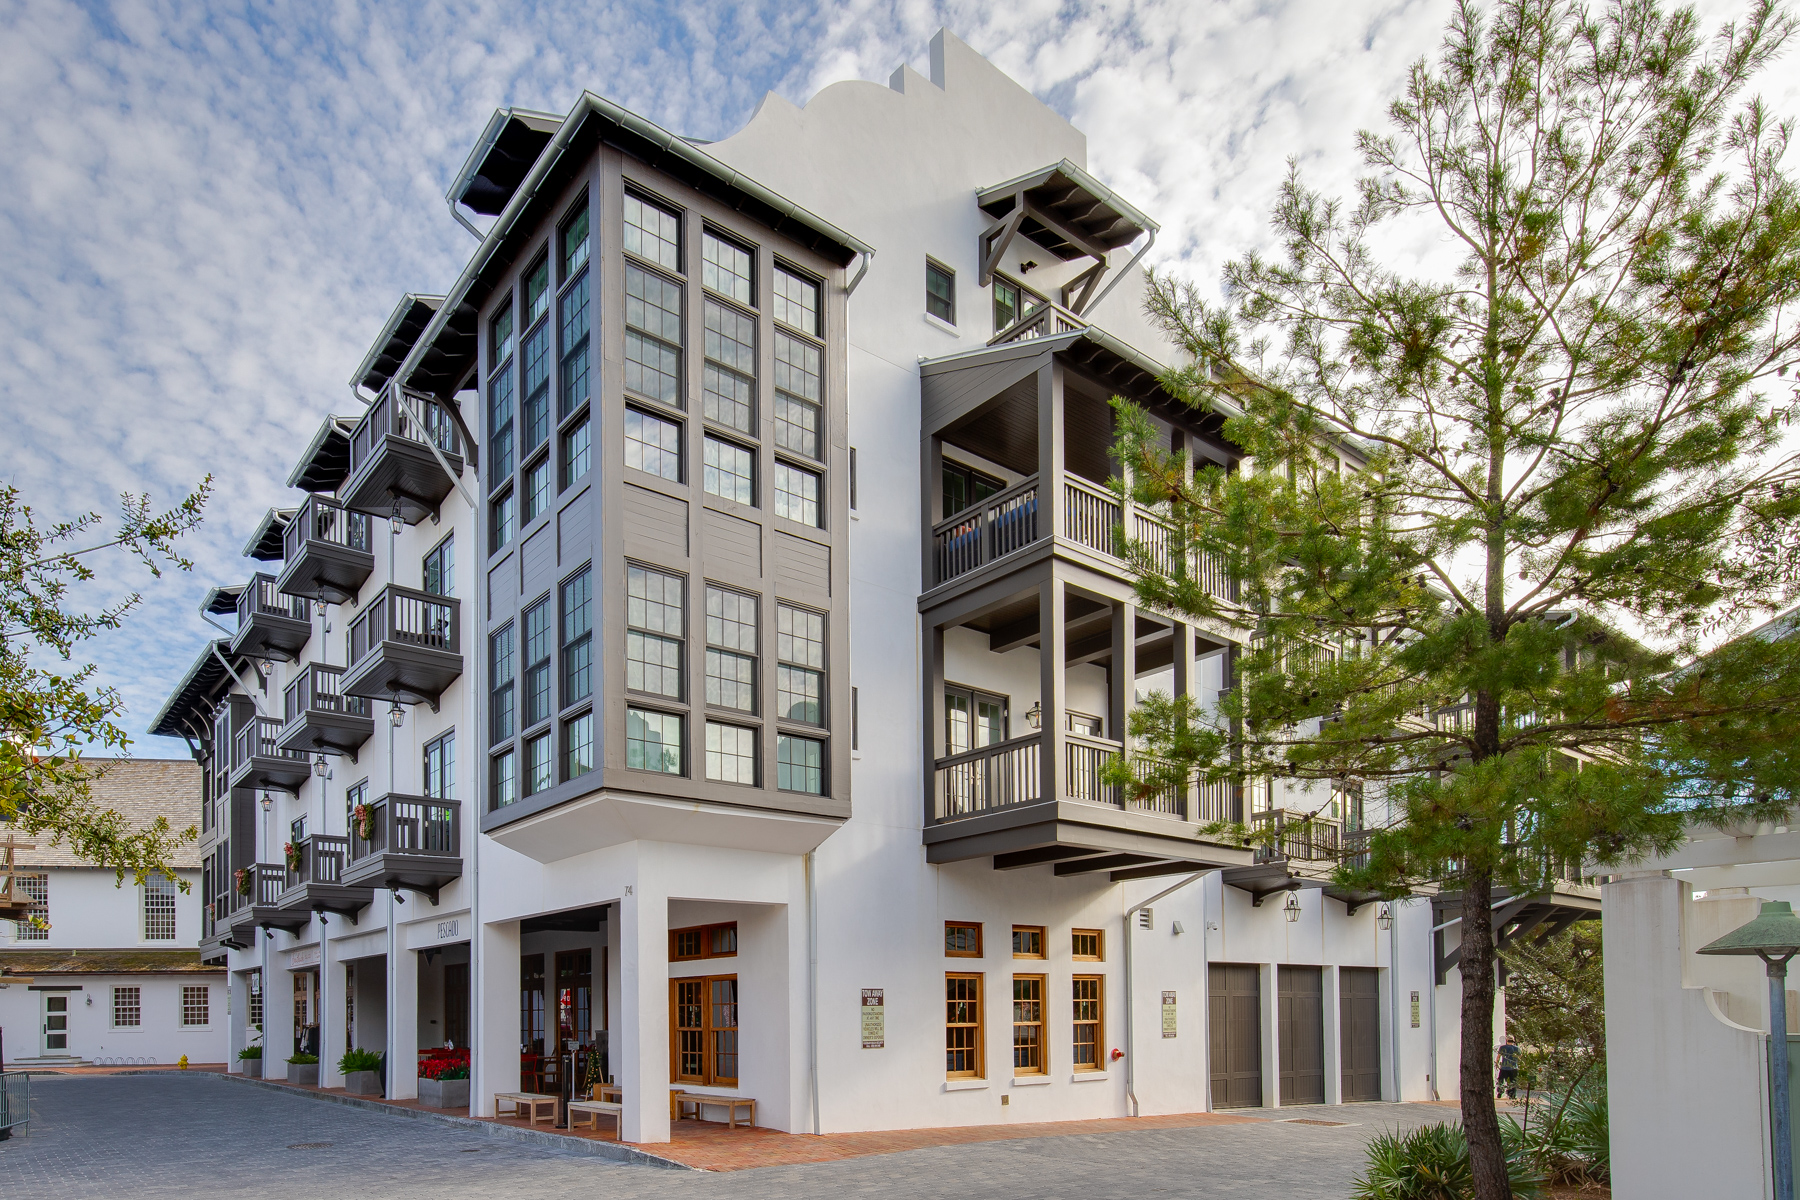 Condominiums 為 出售 在 Modern Gulf View Condo South of Scenic 30A 74 Town Hall Road 2B, Rosemary Beach, 佛羅里達州 32461 美國